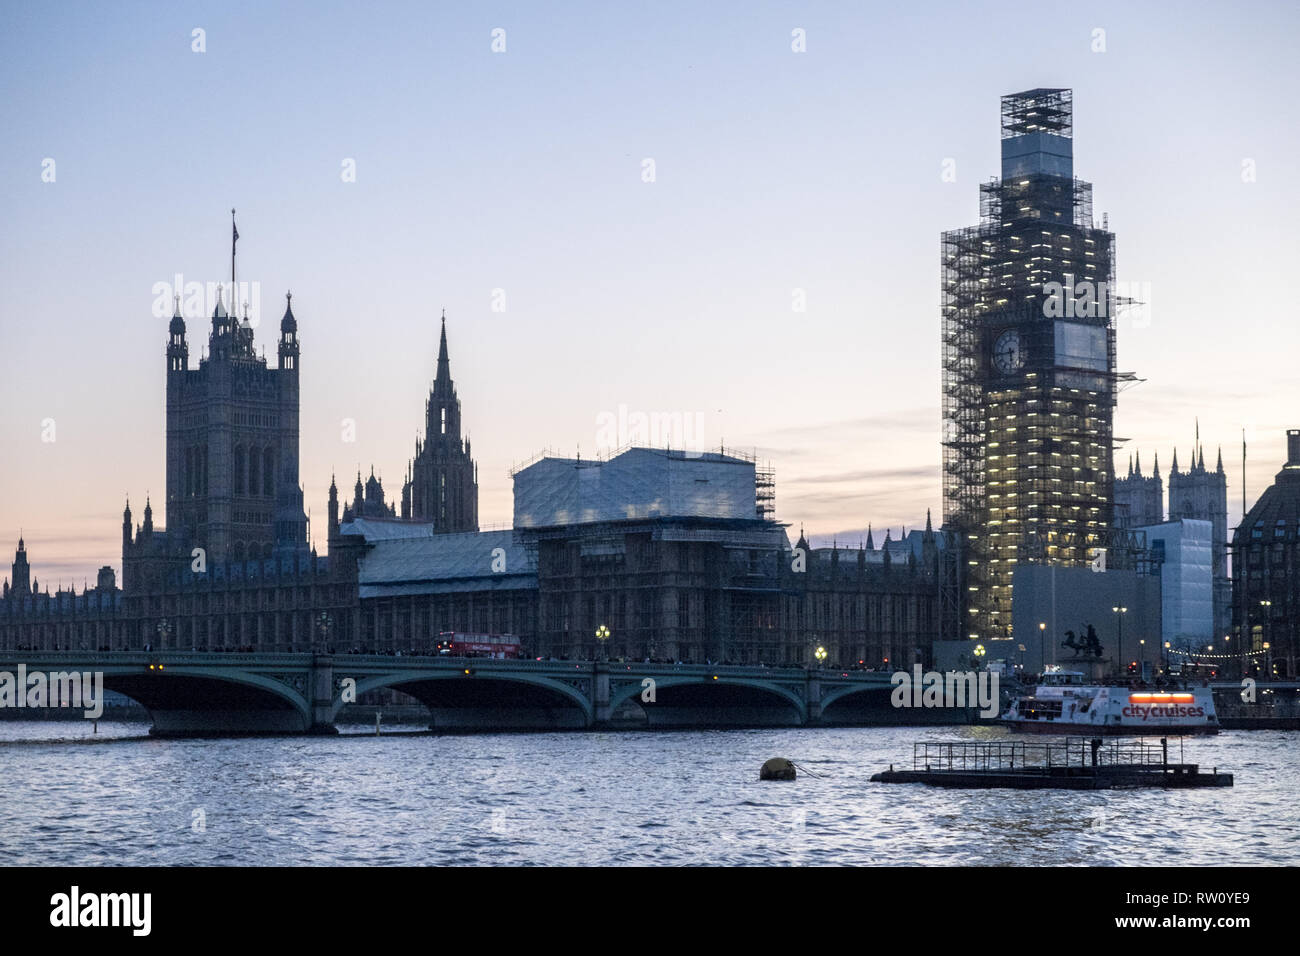 Houses of Parliament,Big Ben,clock,tower,with,scaffold,scaffolding,under,renovation,River Thames,Westminster,city,of,London,capital,England,English, Stock Photo